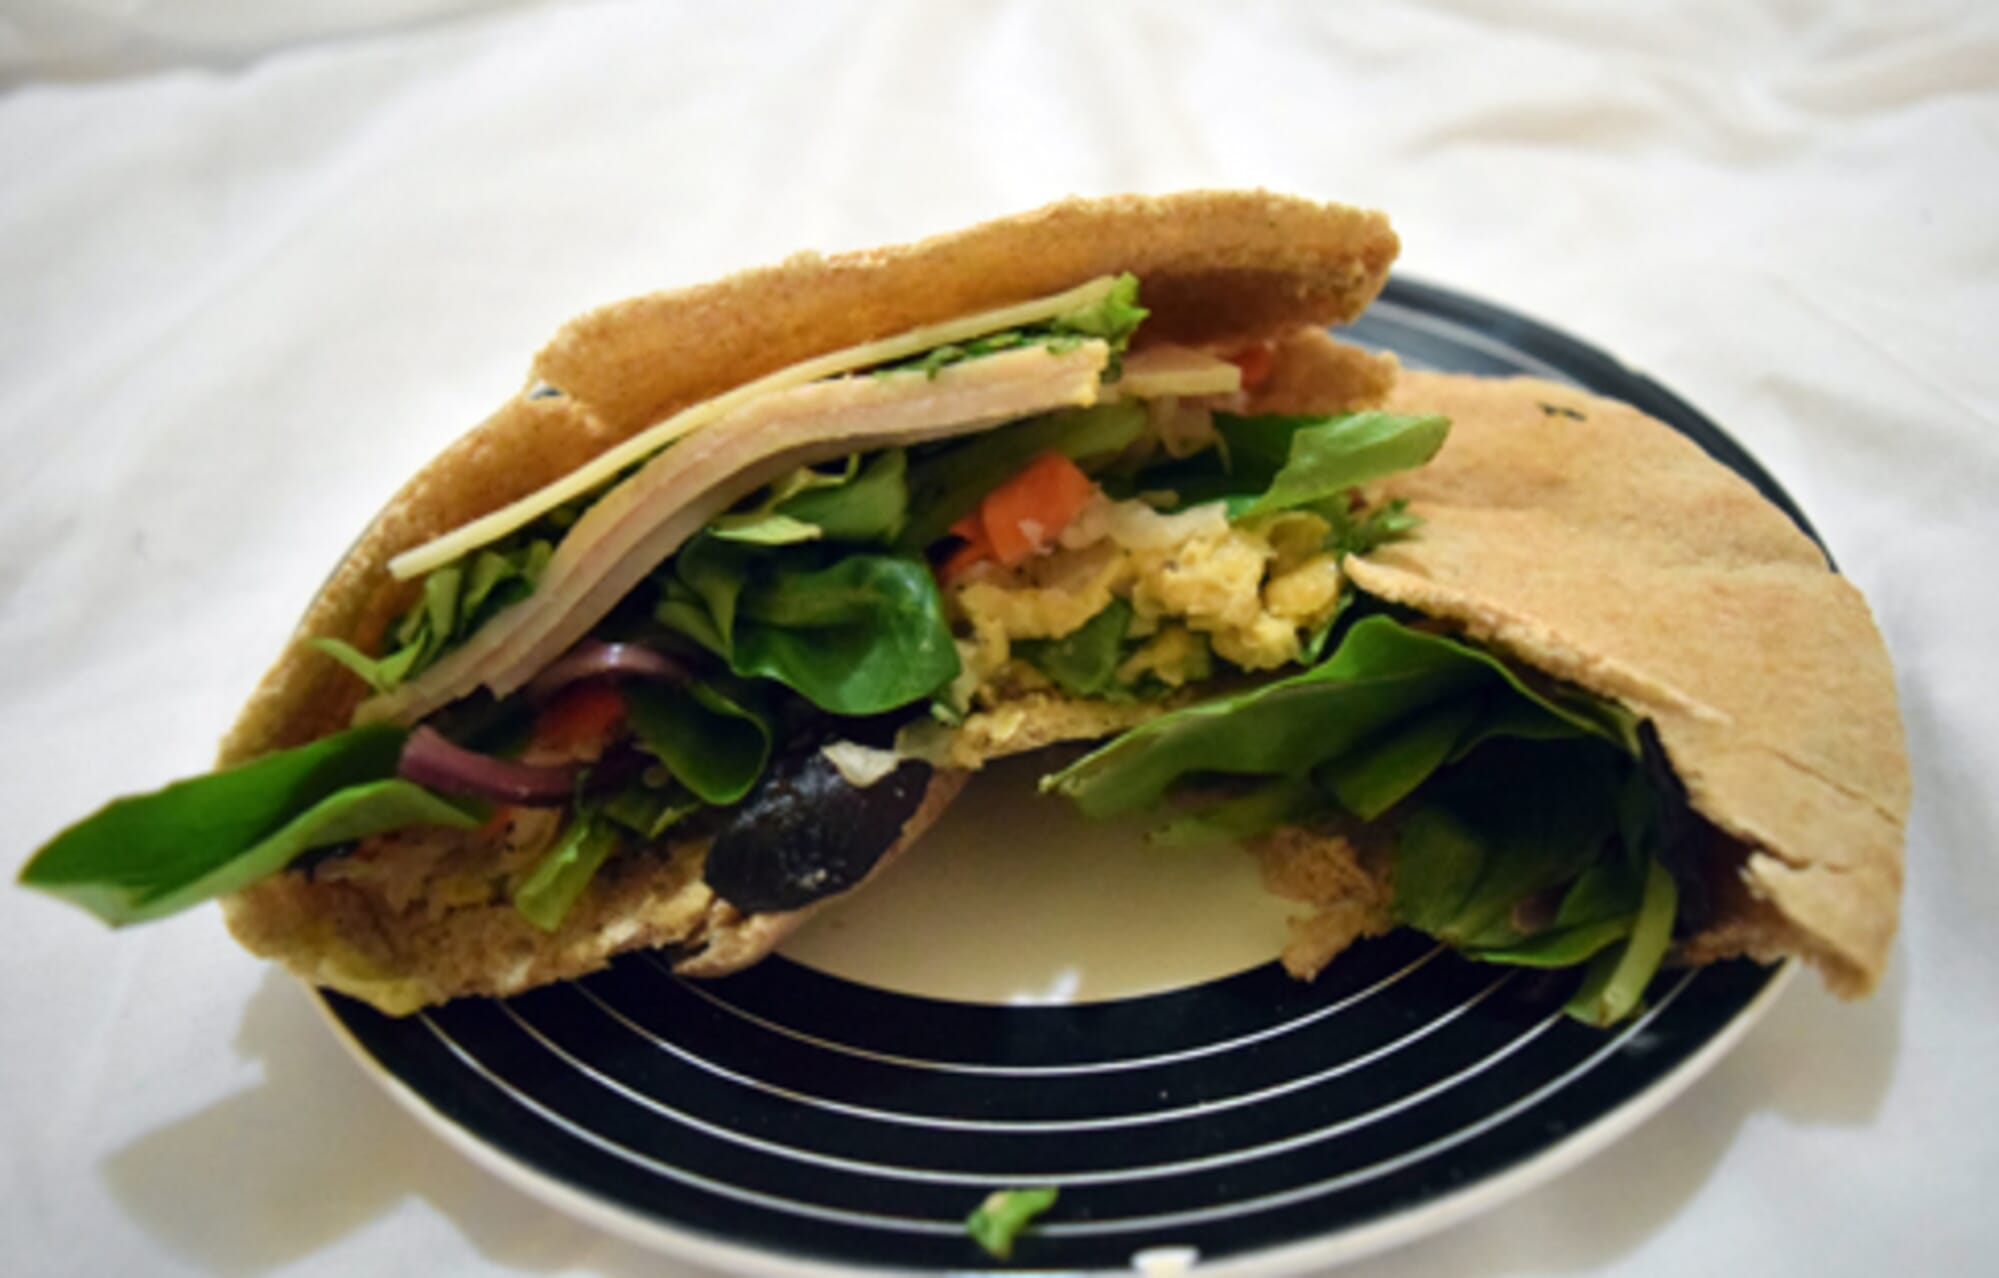 Turkey, Provolone, and Chickpea Stuffed Pita